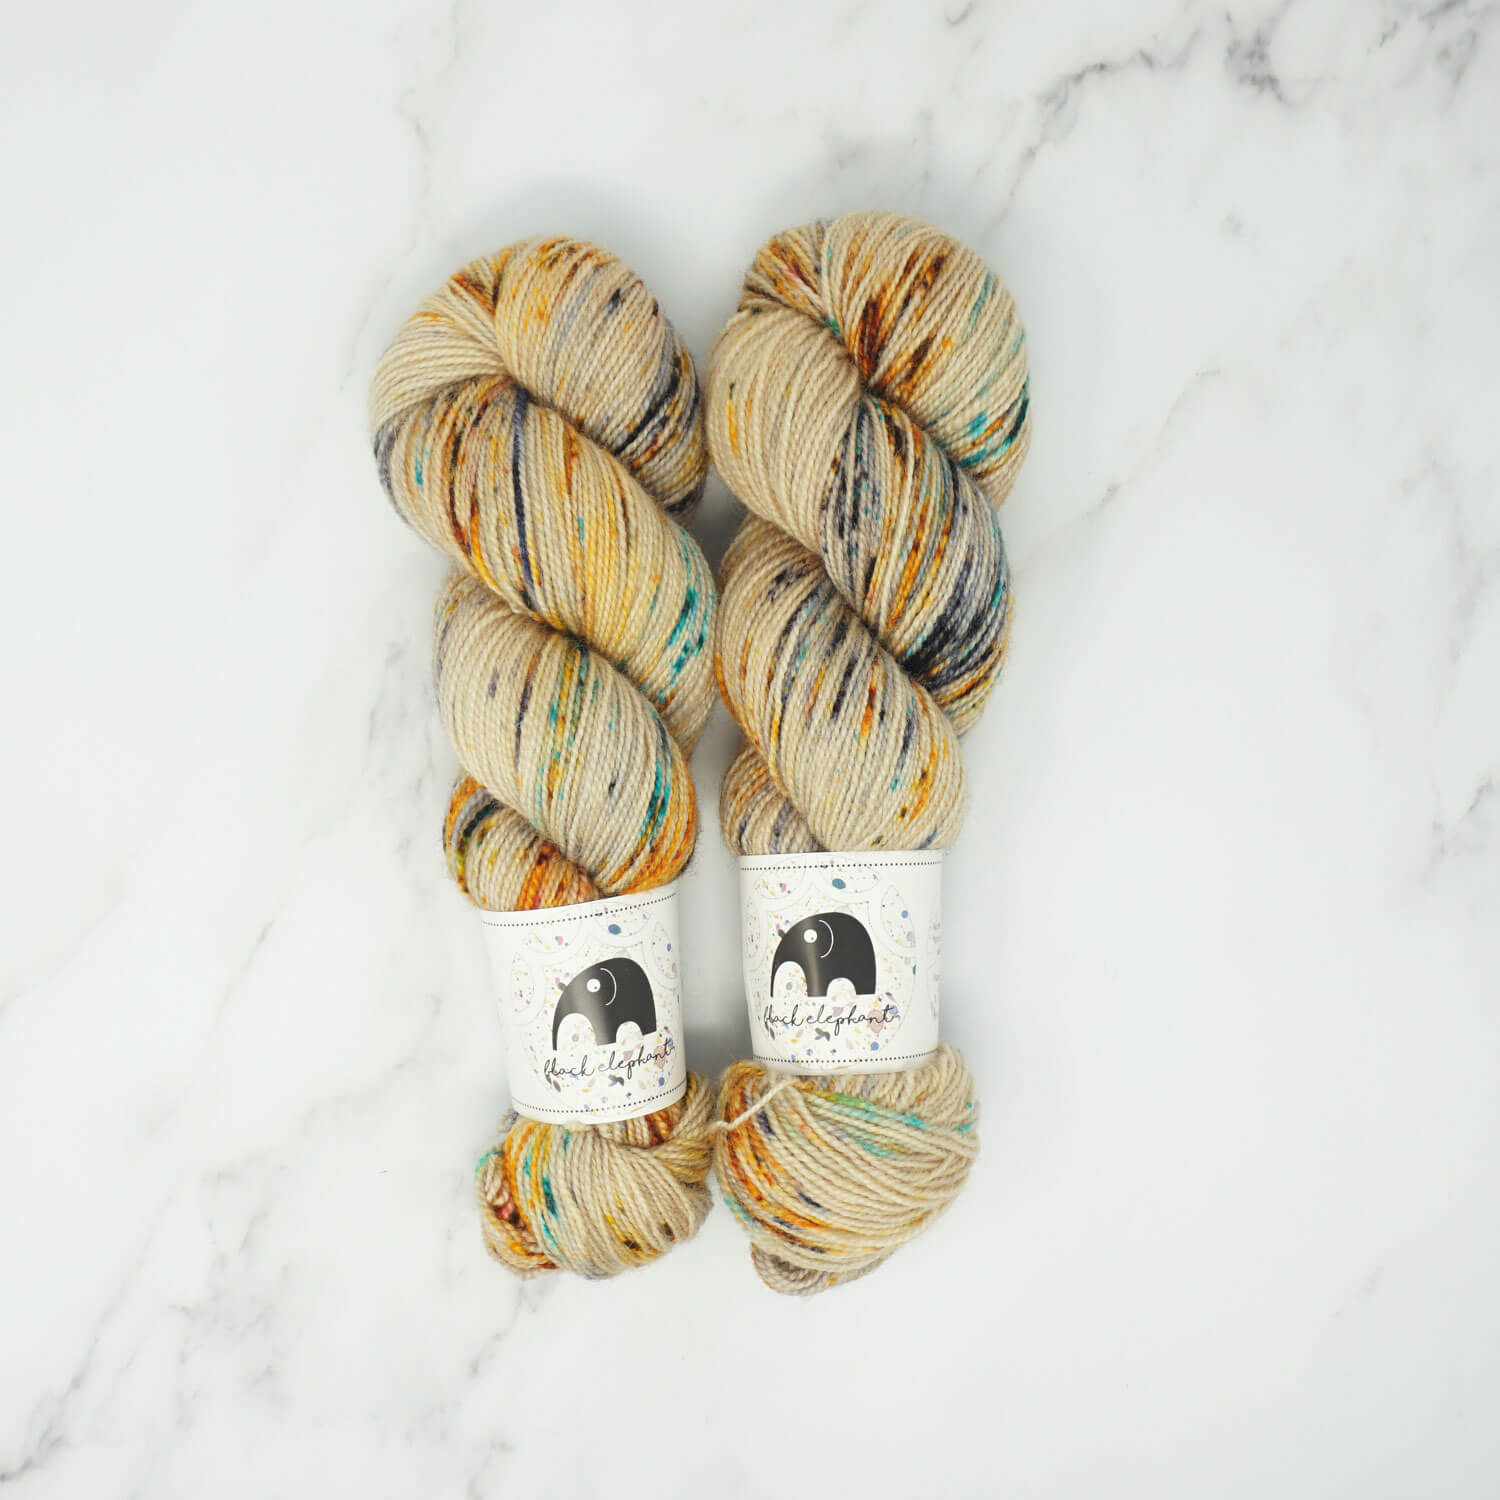 Black Elephant - Blue Faced Leicester Yarn - 110g - Nevermind | Yarn Worx